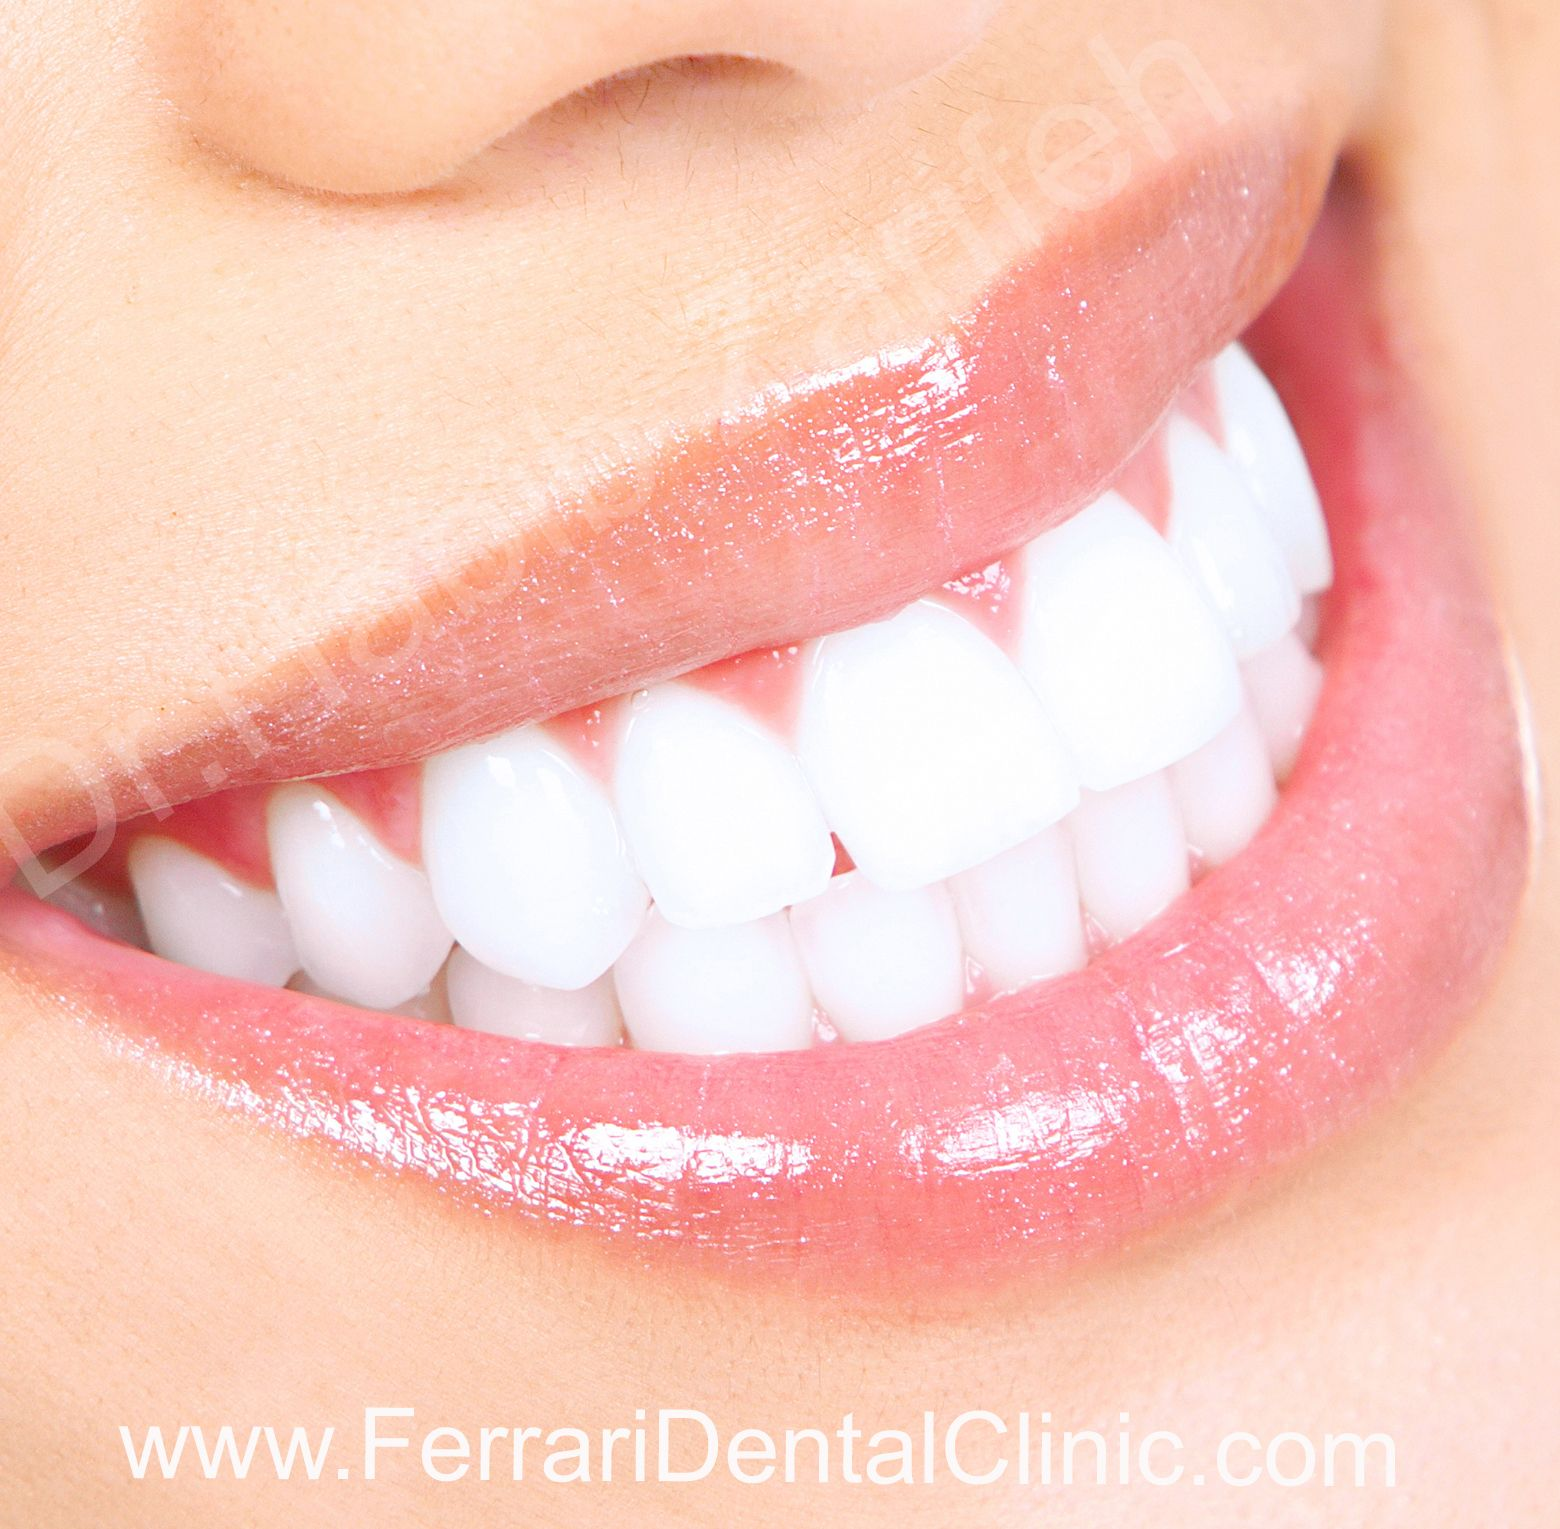 17 Best images about Hollywood smile Beirut Lebanon new website on ...